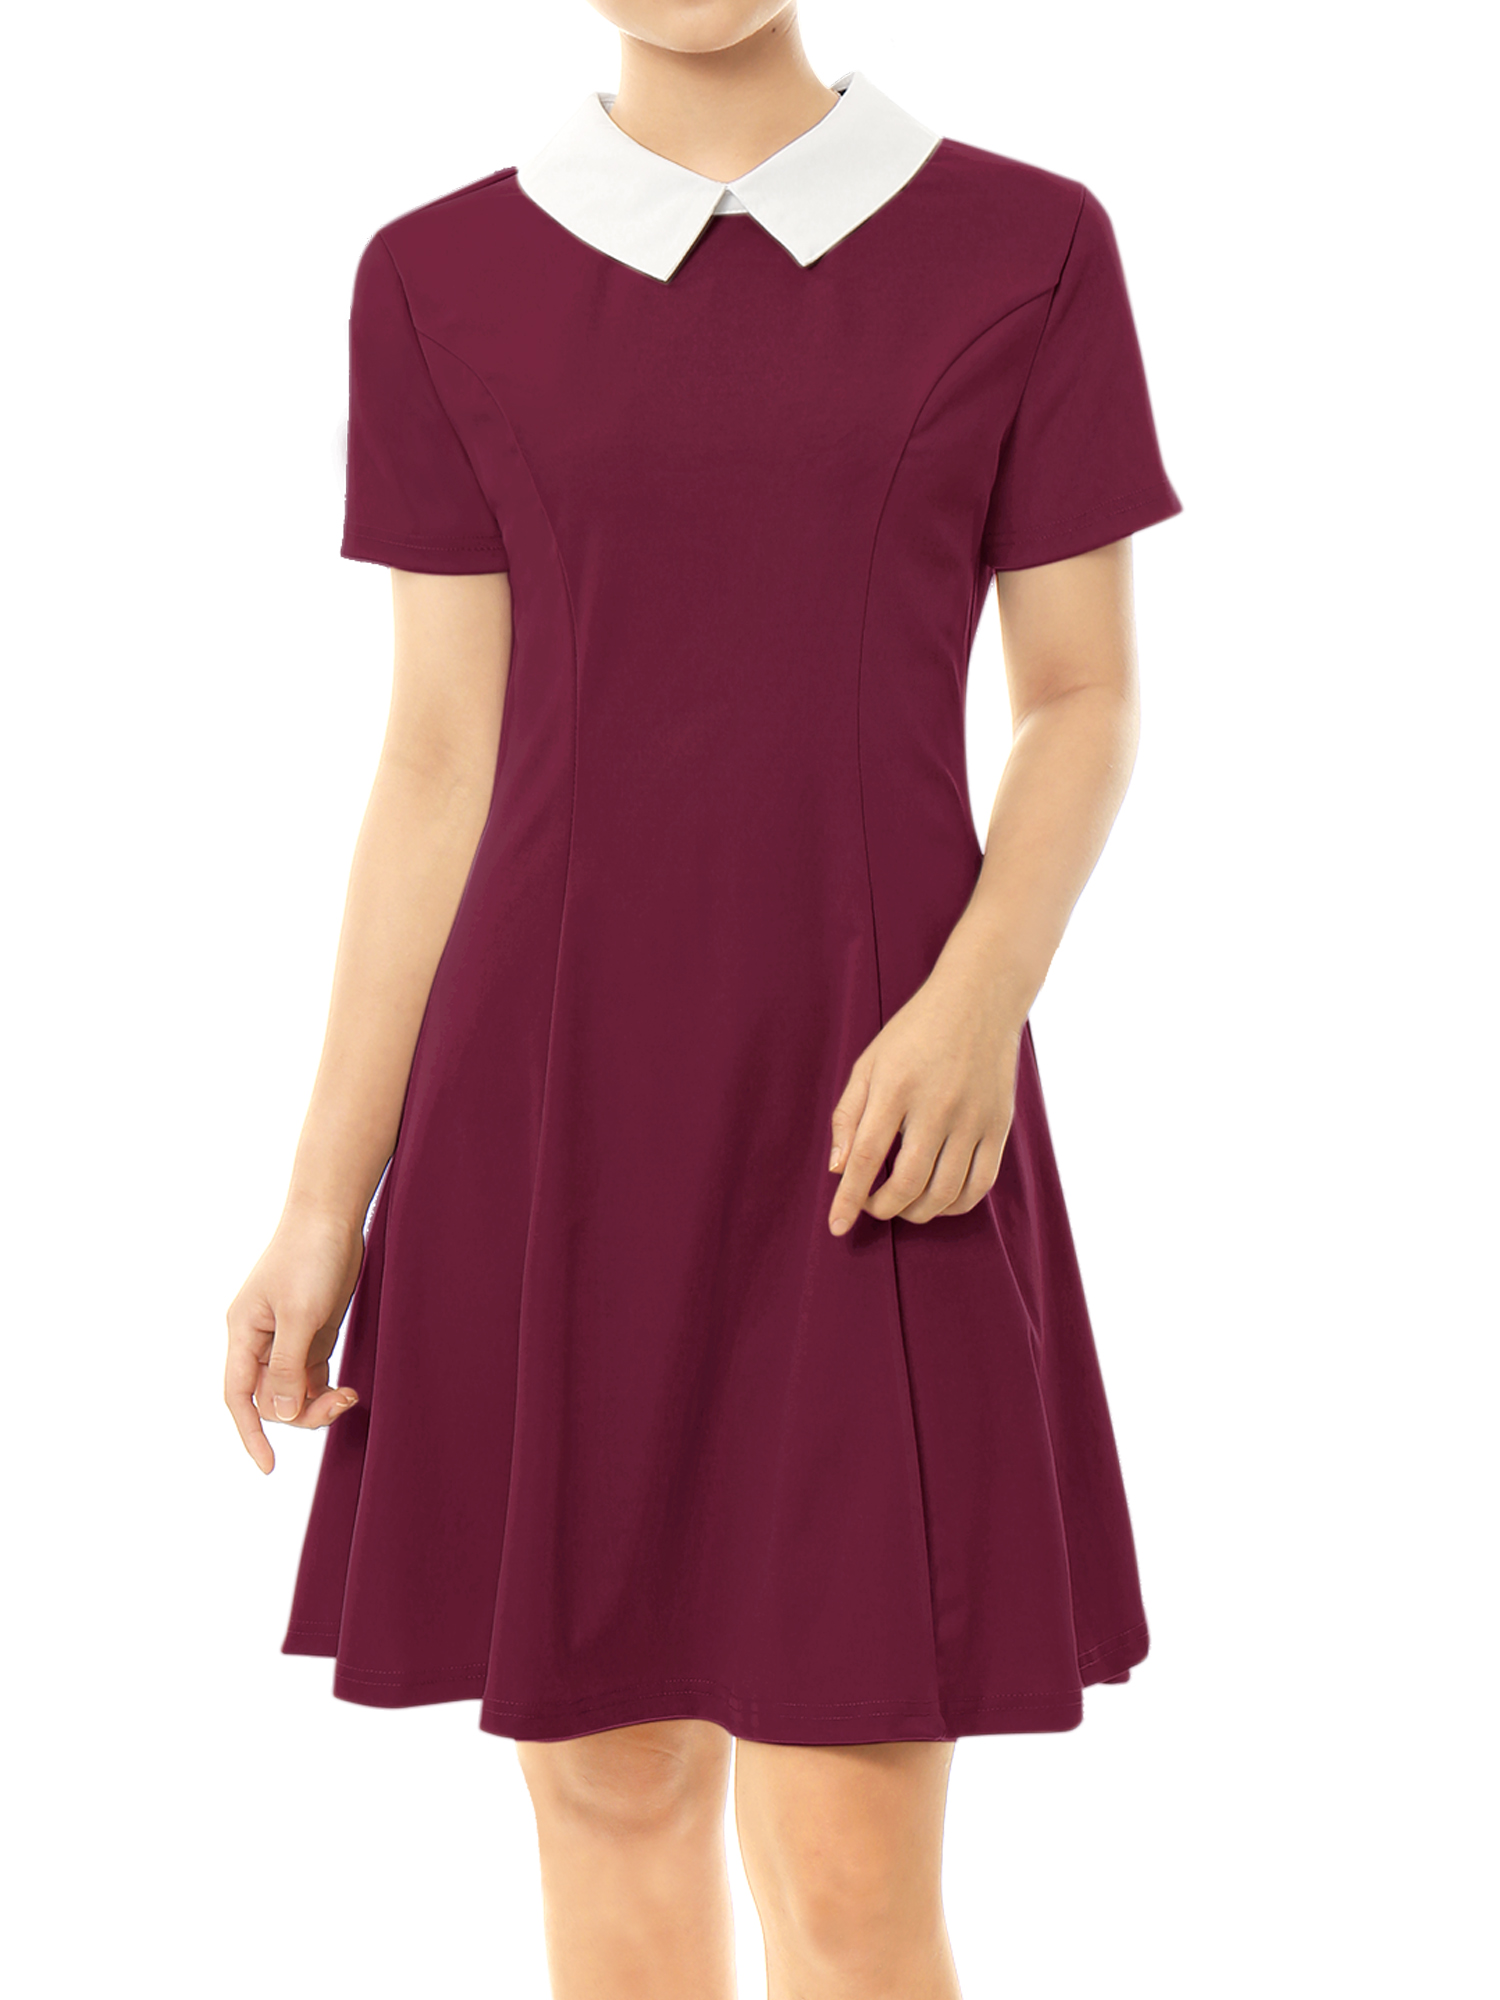 Allegra K Women Doll Collar Short Sleeves Fit and Flare Dress Red M